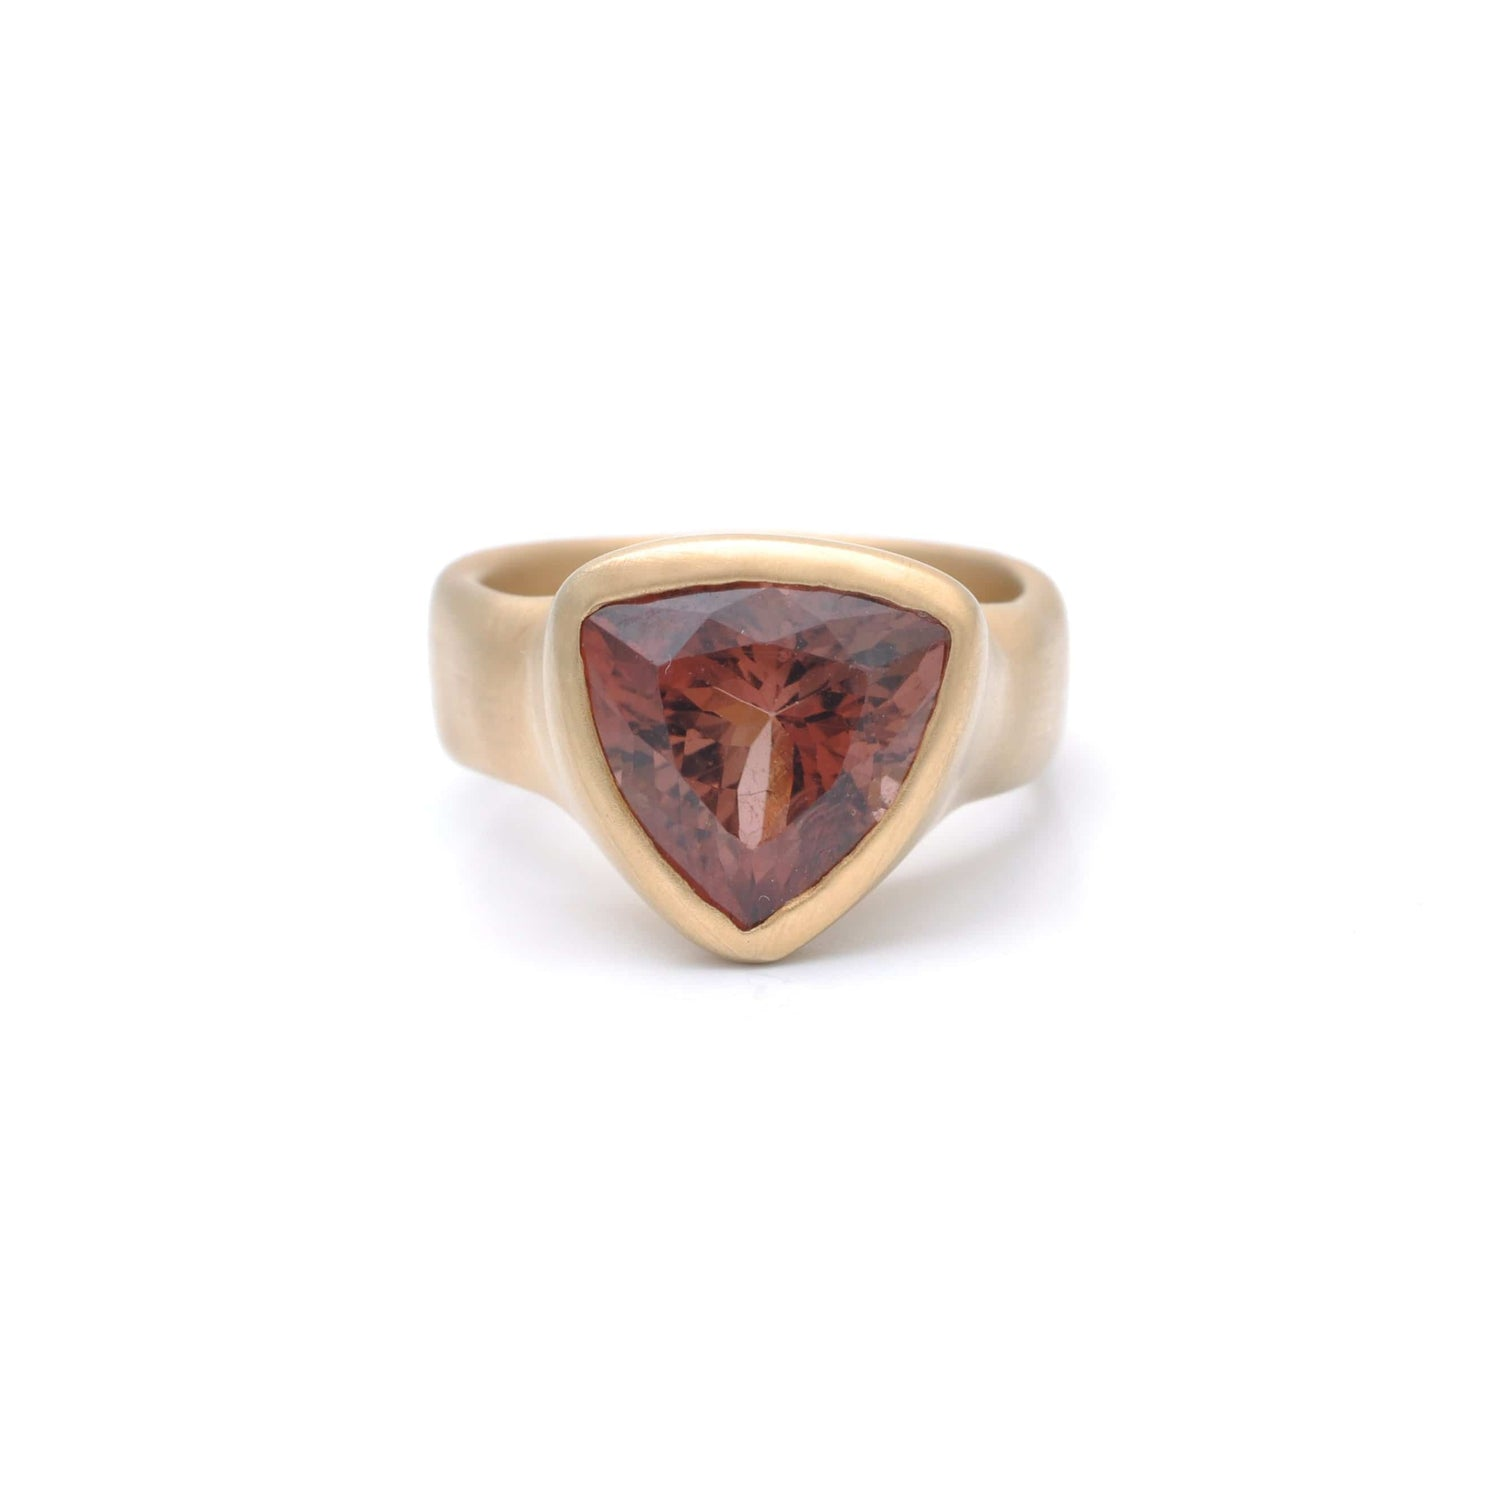 Trillion Cut Peachy Tourmaline Satin Gold Ring